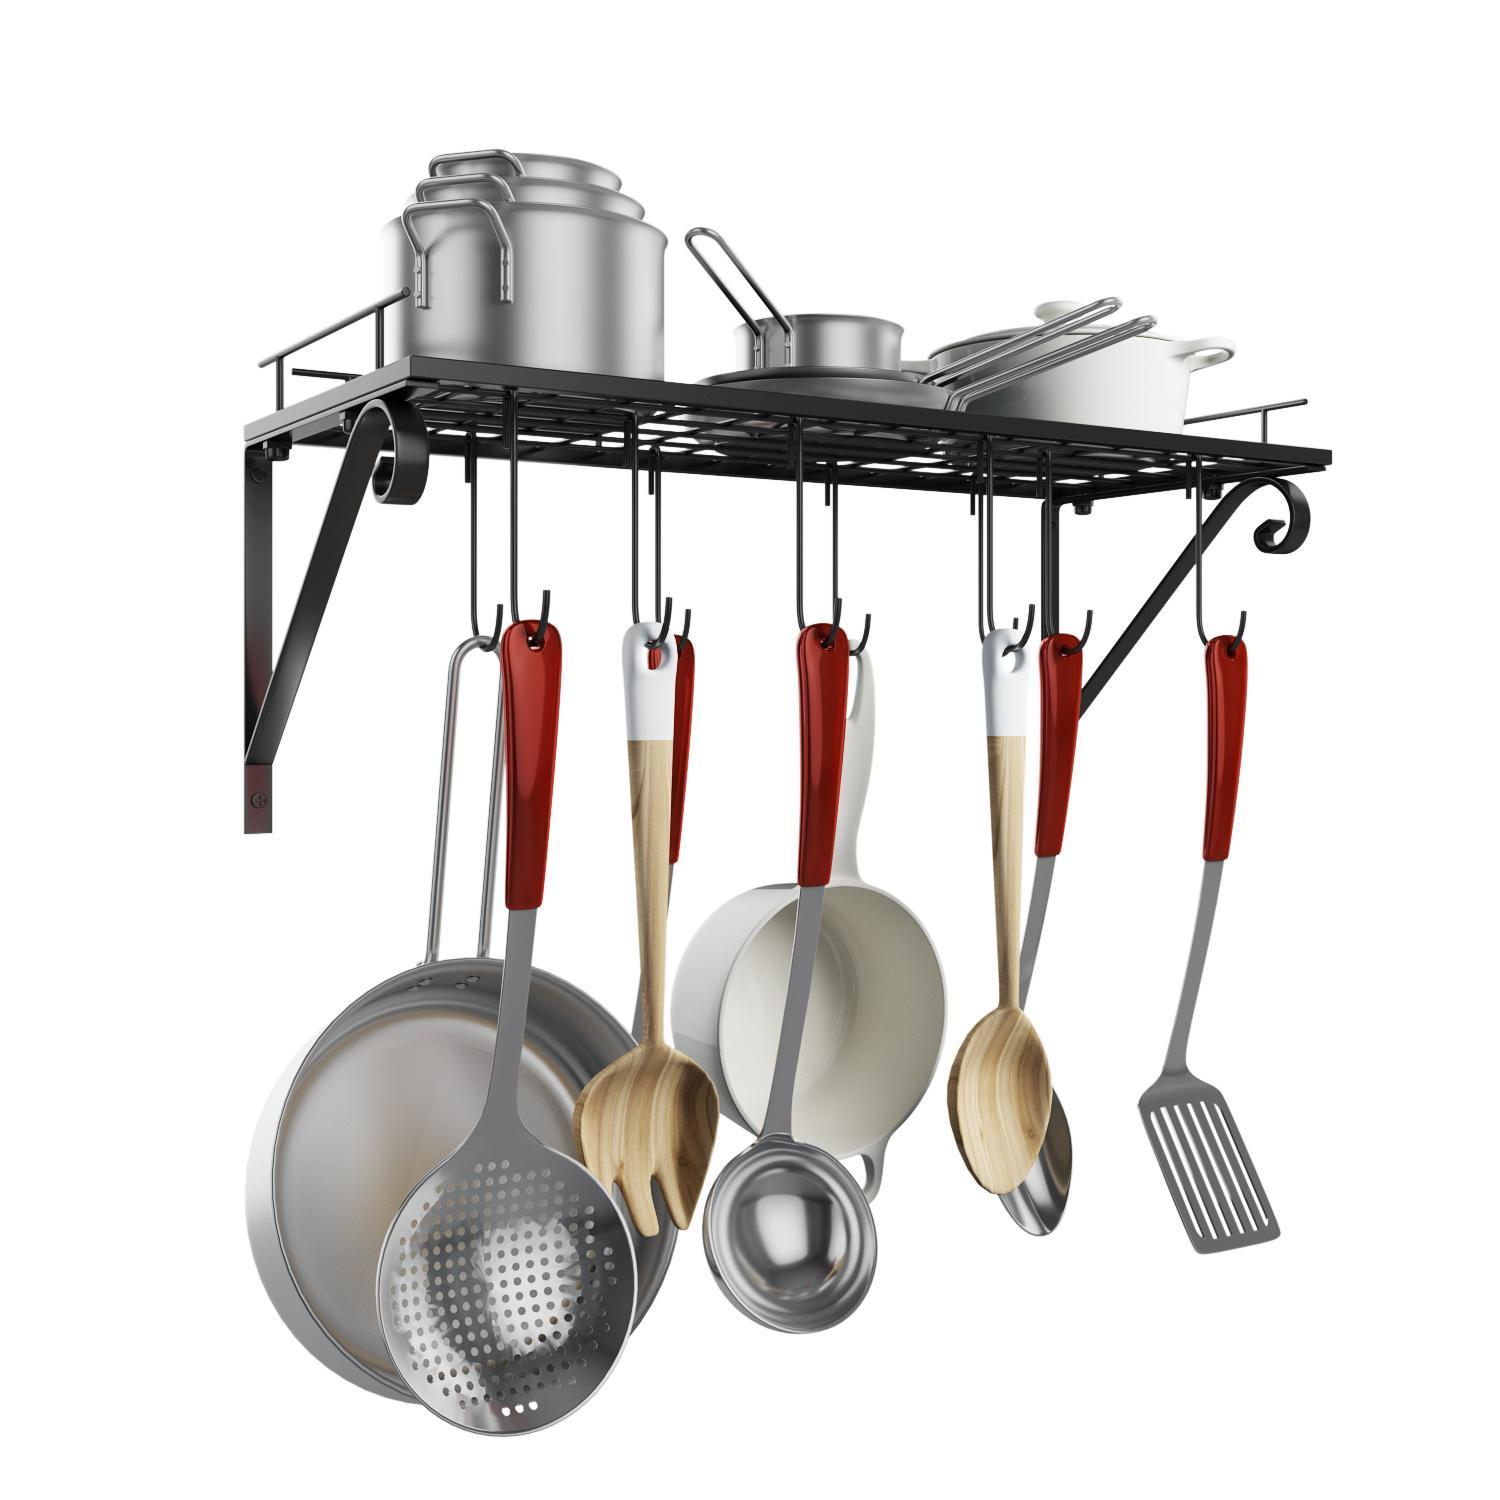 Delicieux Hanging Rack,Modern And Stylish Kitchen Cabinets Wall Pot Pan Rack With 10  Hooks,